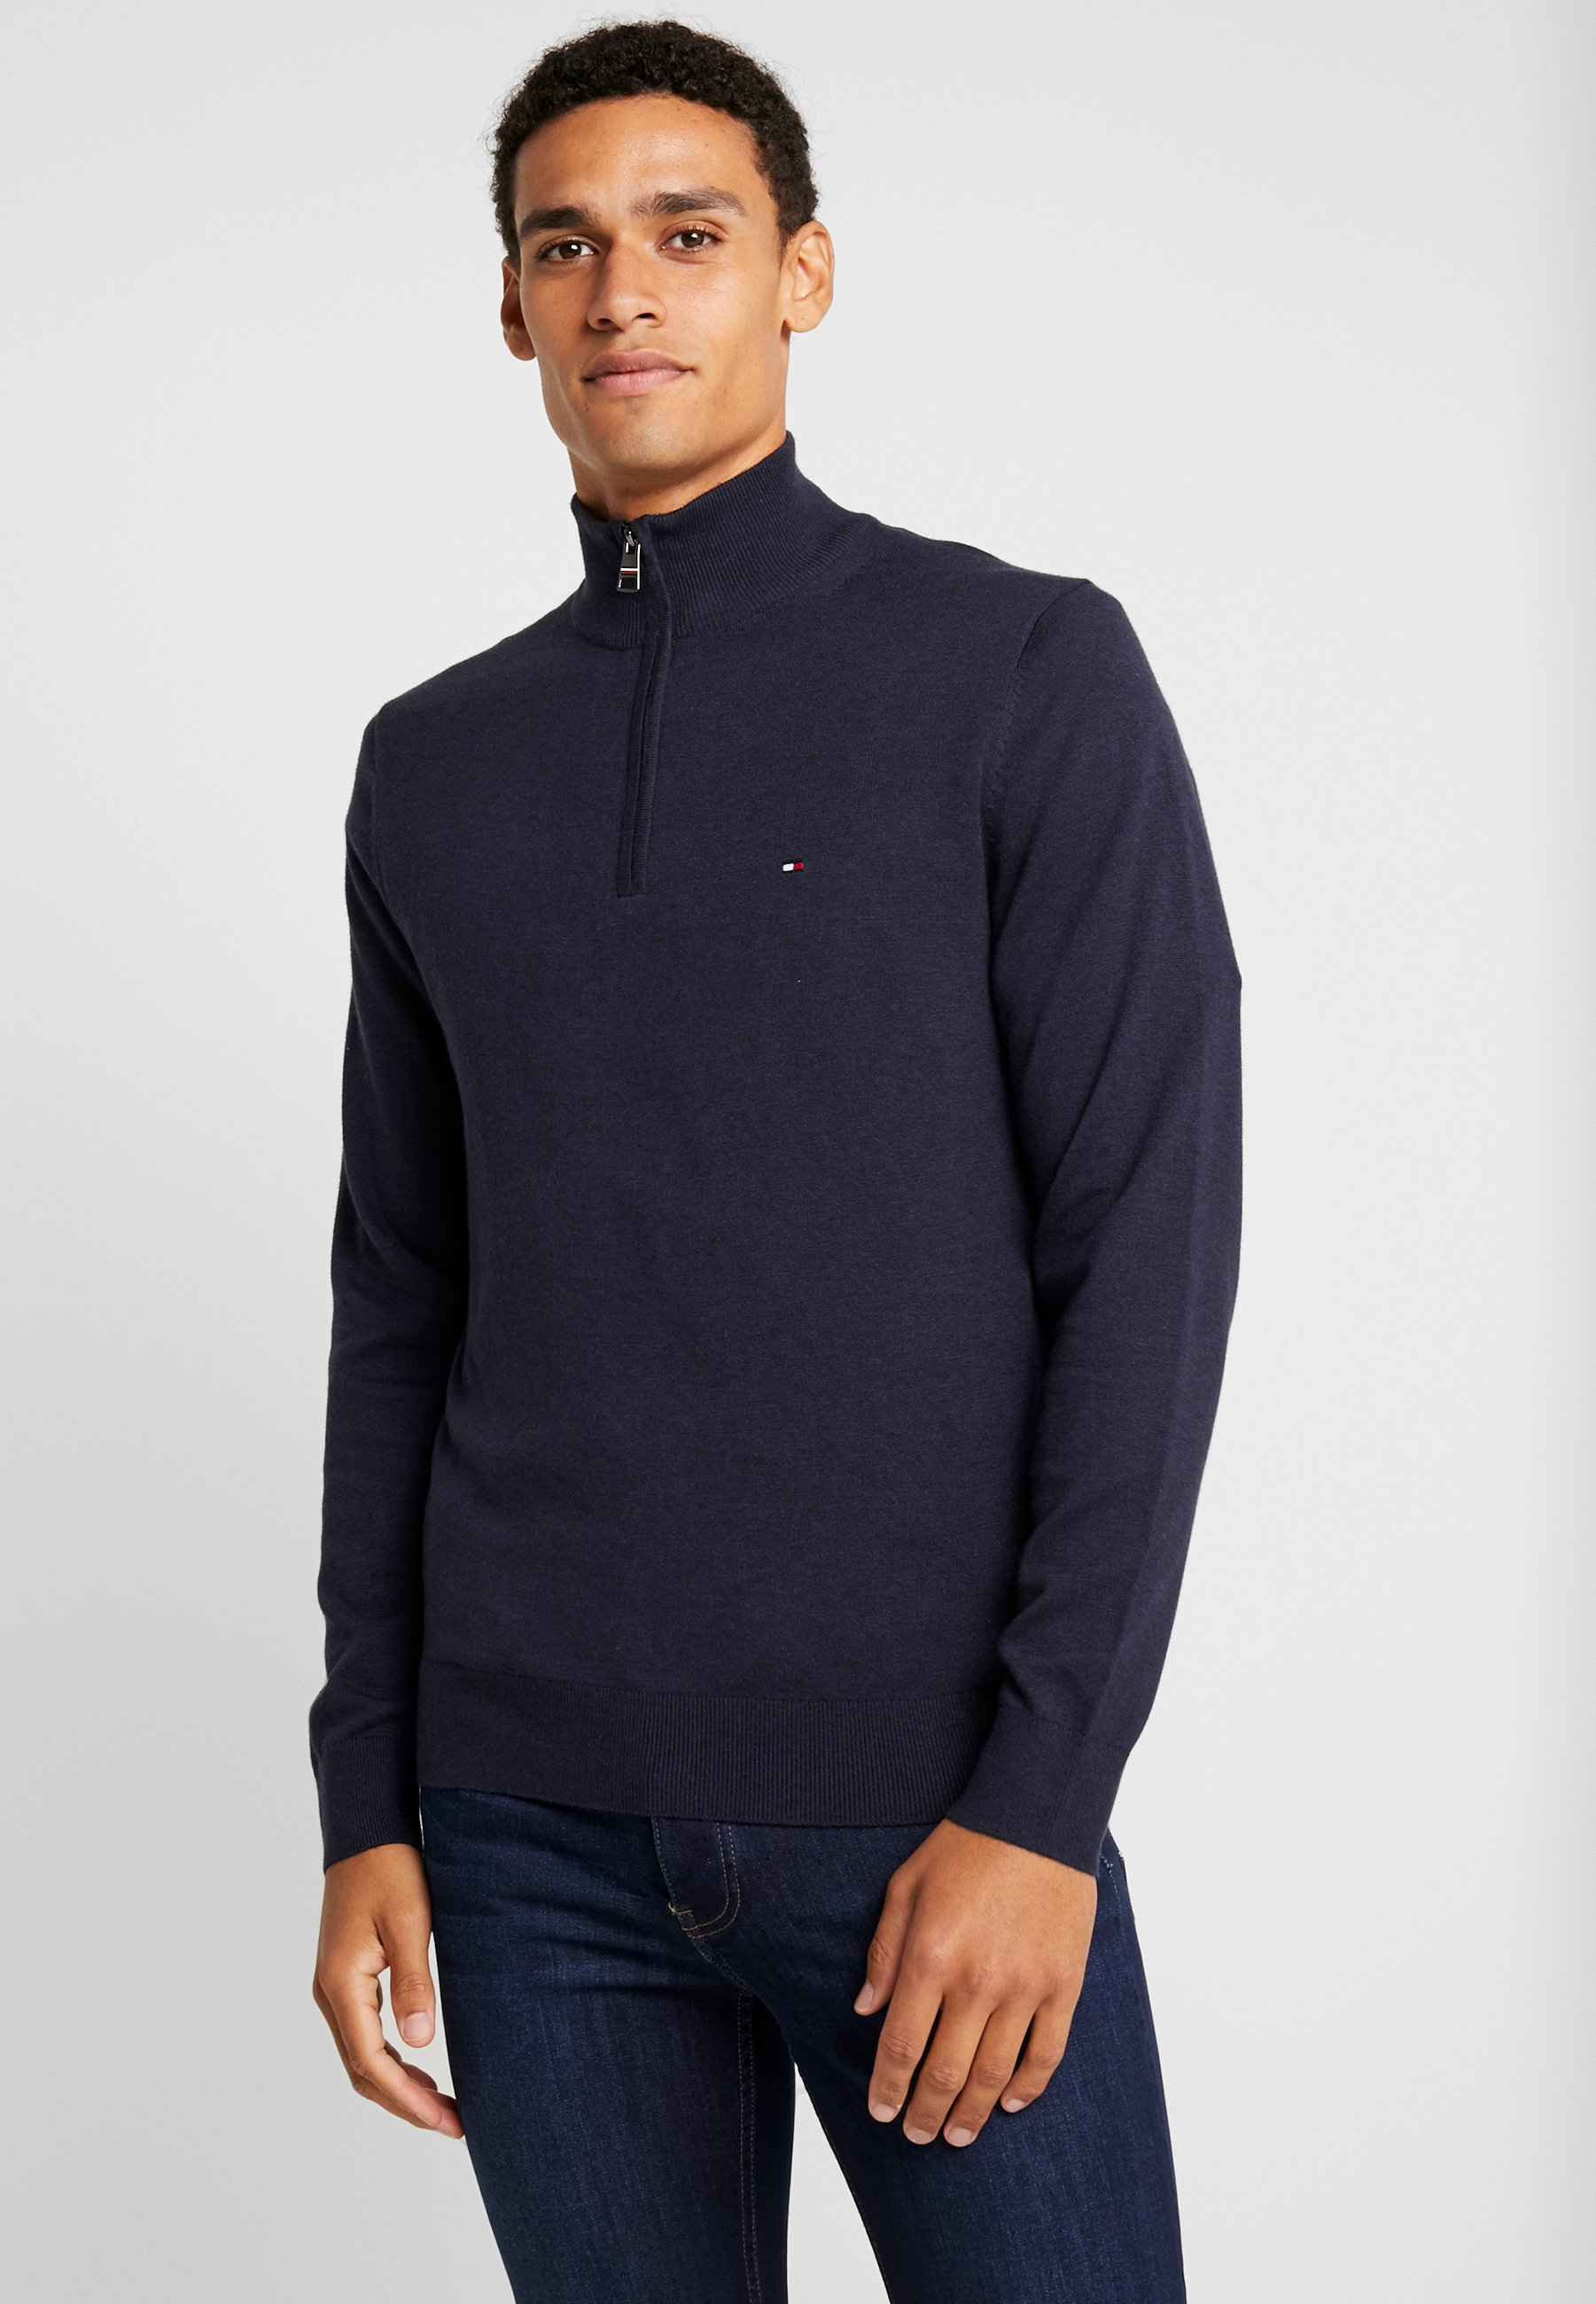 Silk Zip Mock   Strikpullover /Striktrøjer by Tommy Hilfiger